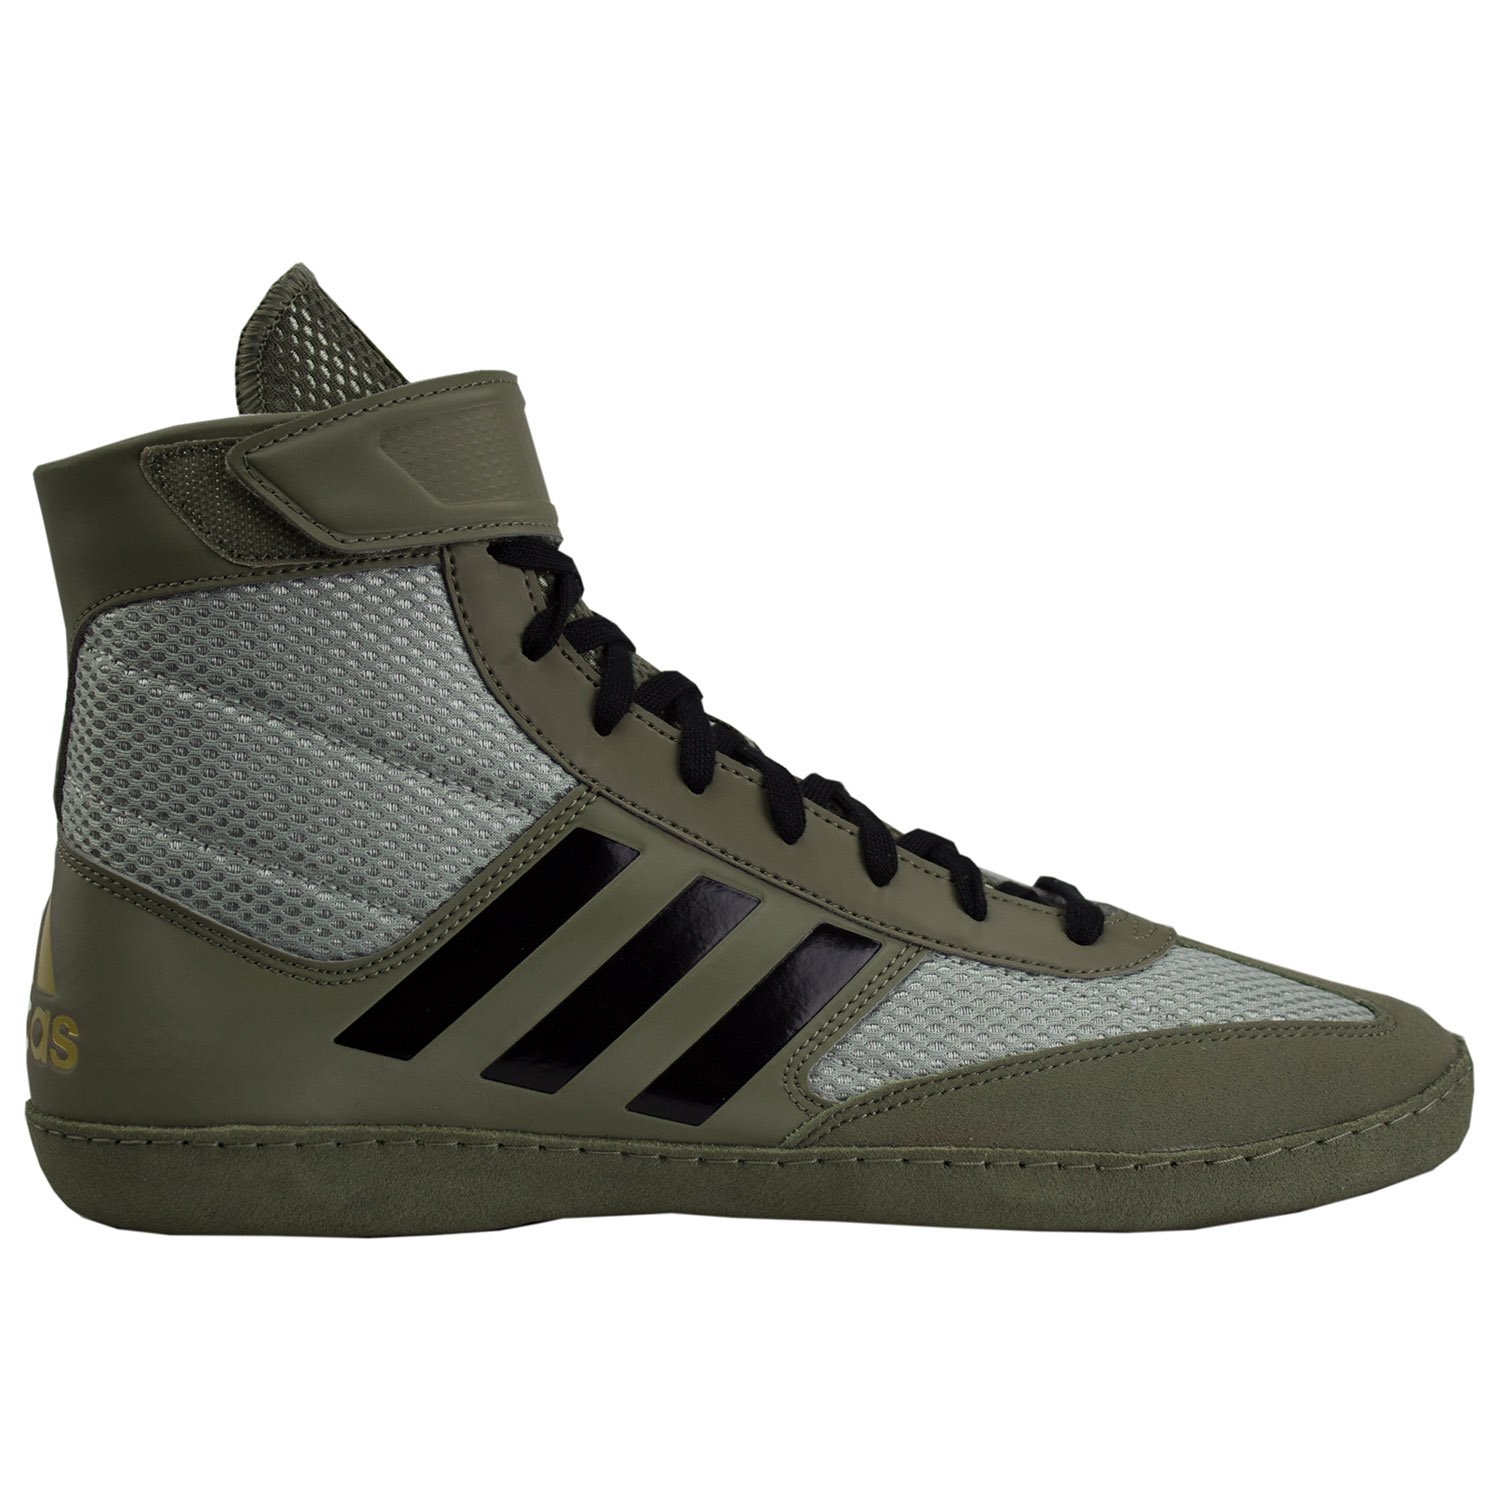 adidas Combat Speed 5 Men's Wrestling Shoes, Tan/Black/Silver, Size 10.5